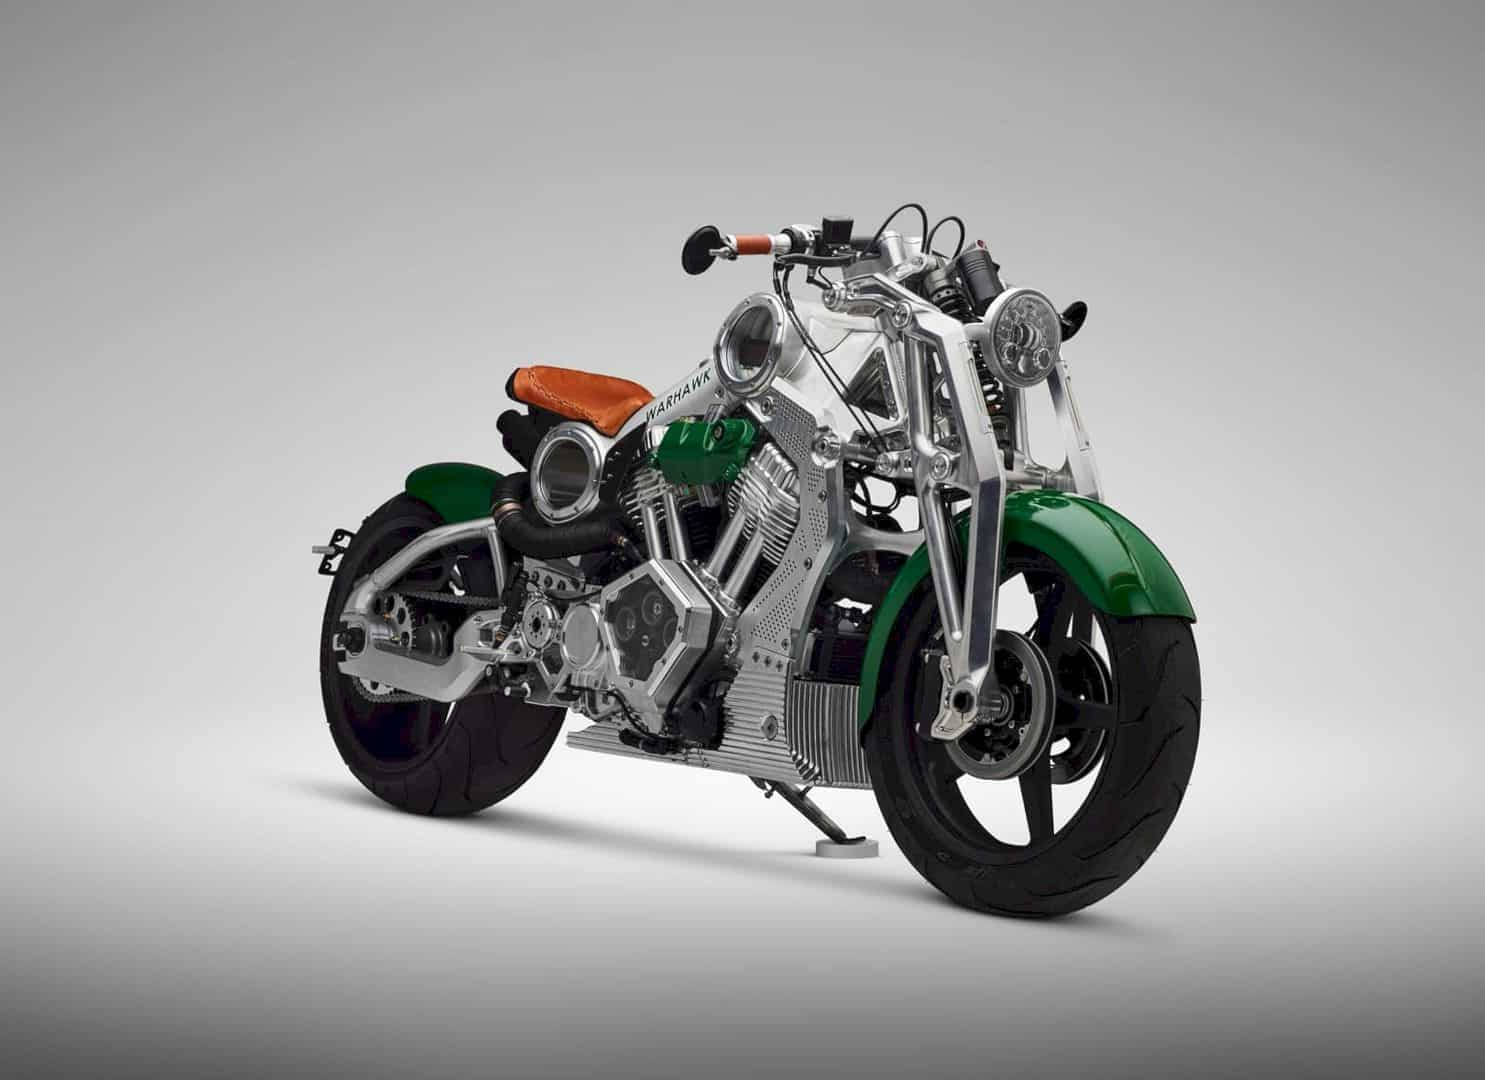 Warhawk by Curtiss Motorcycle: The First in 105 Years – That's Long Dude…